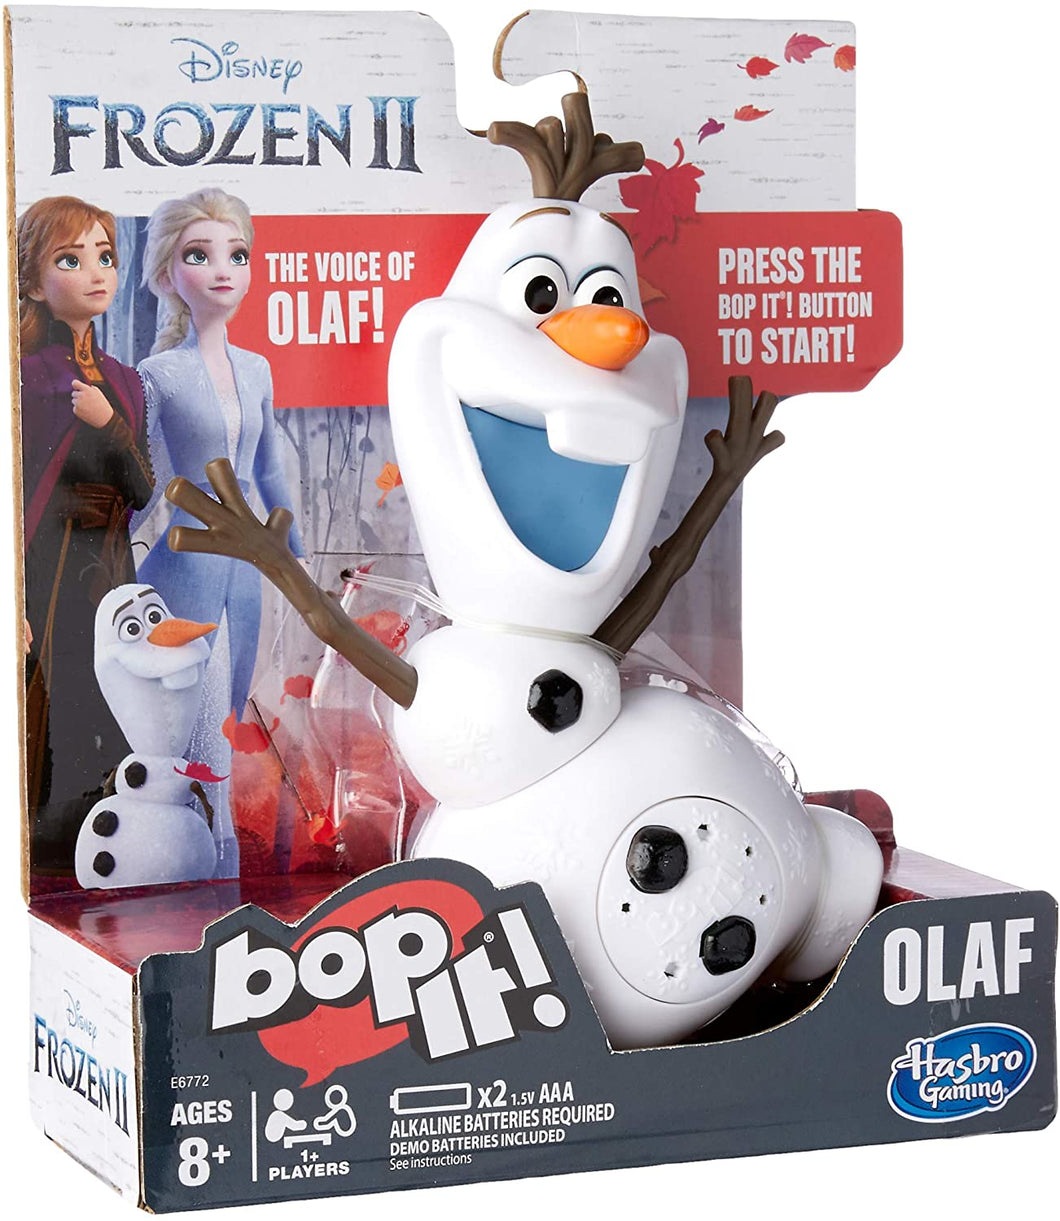 Hasbro Gaming Bop it! Disney Frozen 2 Olaf Edition Game